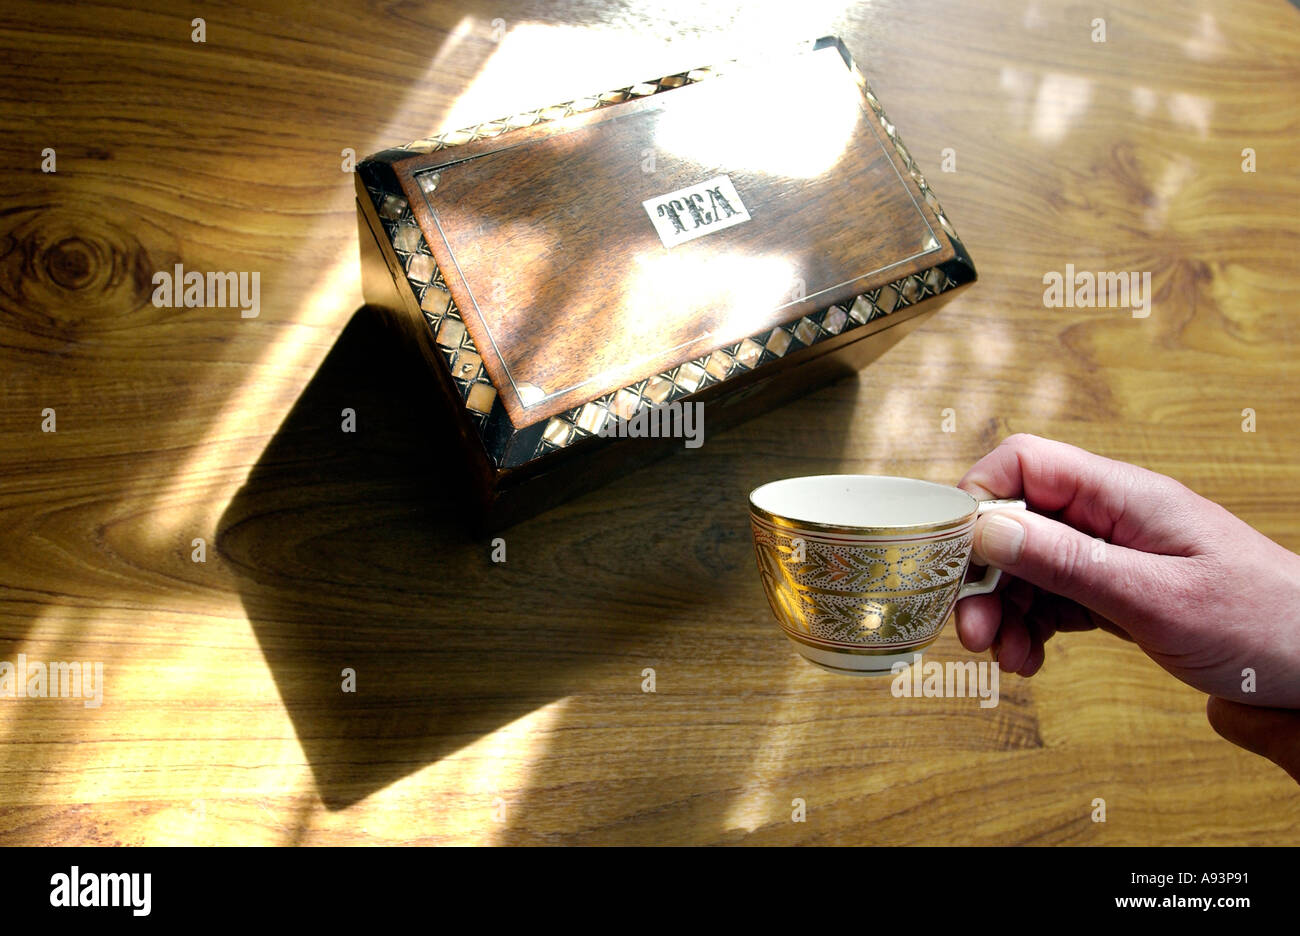 Jane Austin s writing table and Regency teacup and tea caddy at the  [Jane Austen House  museum] - Stock Image